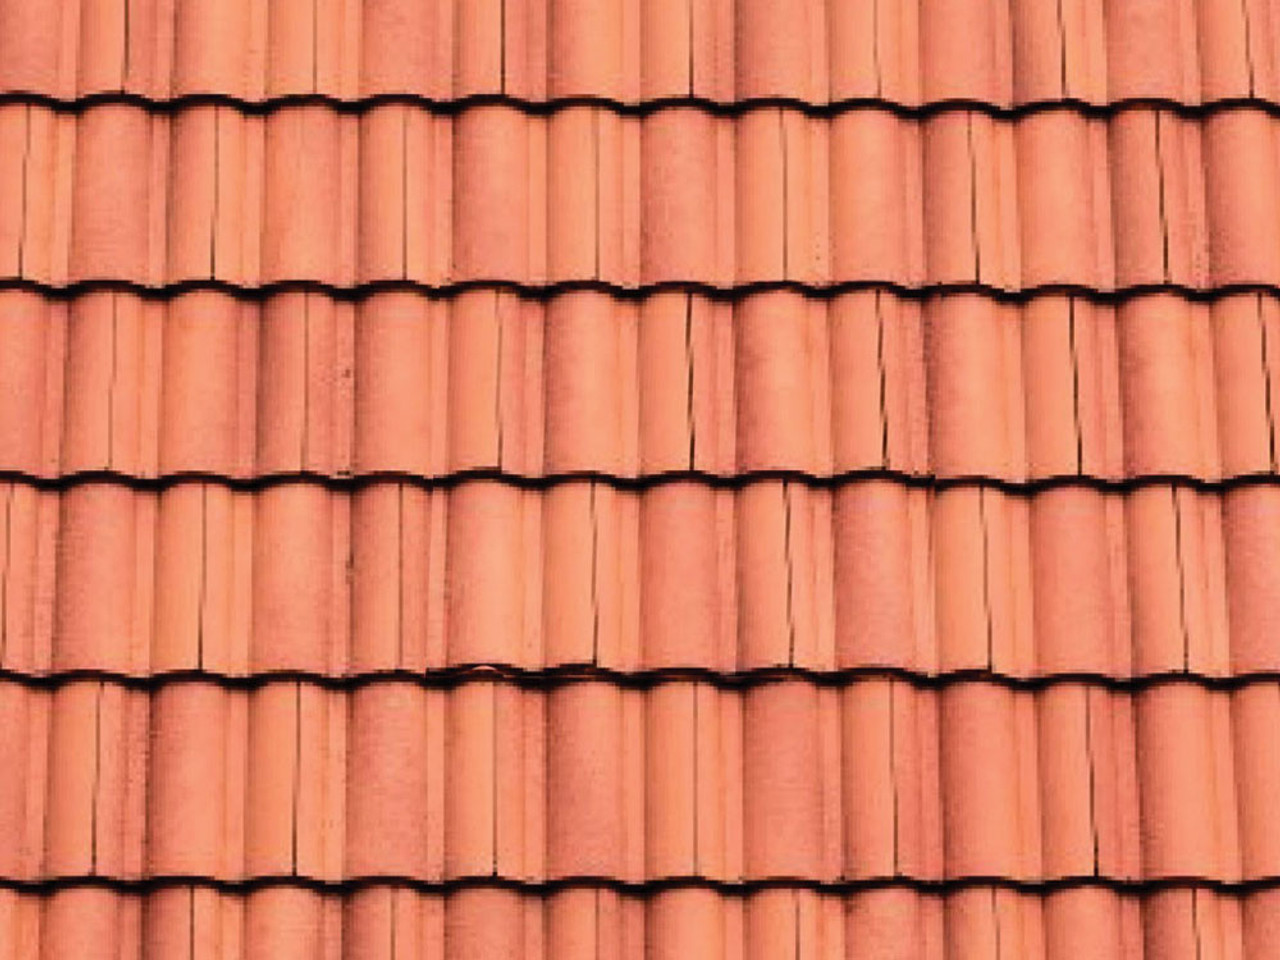 """Patterned Plastic Sheet 2-Pack -- Clay Tile Roof 7-1/2 x 12"""" 19.1 x 30.5cm - Scale: O"""